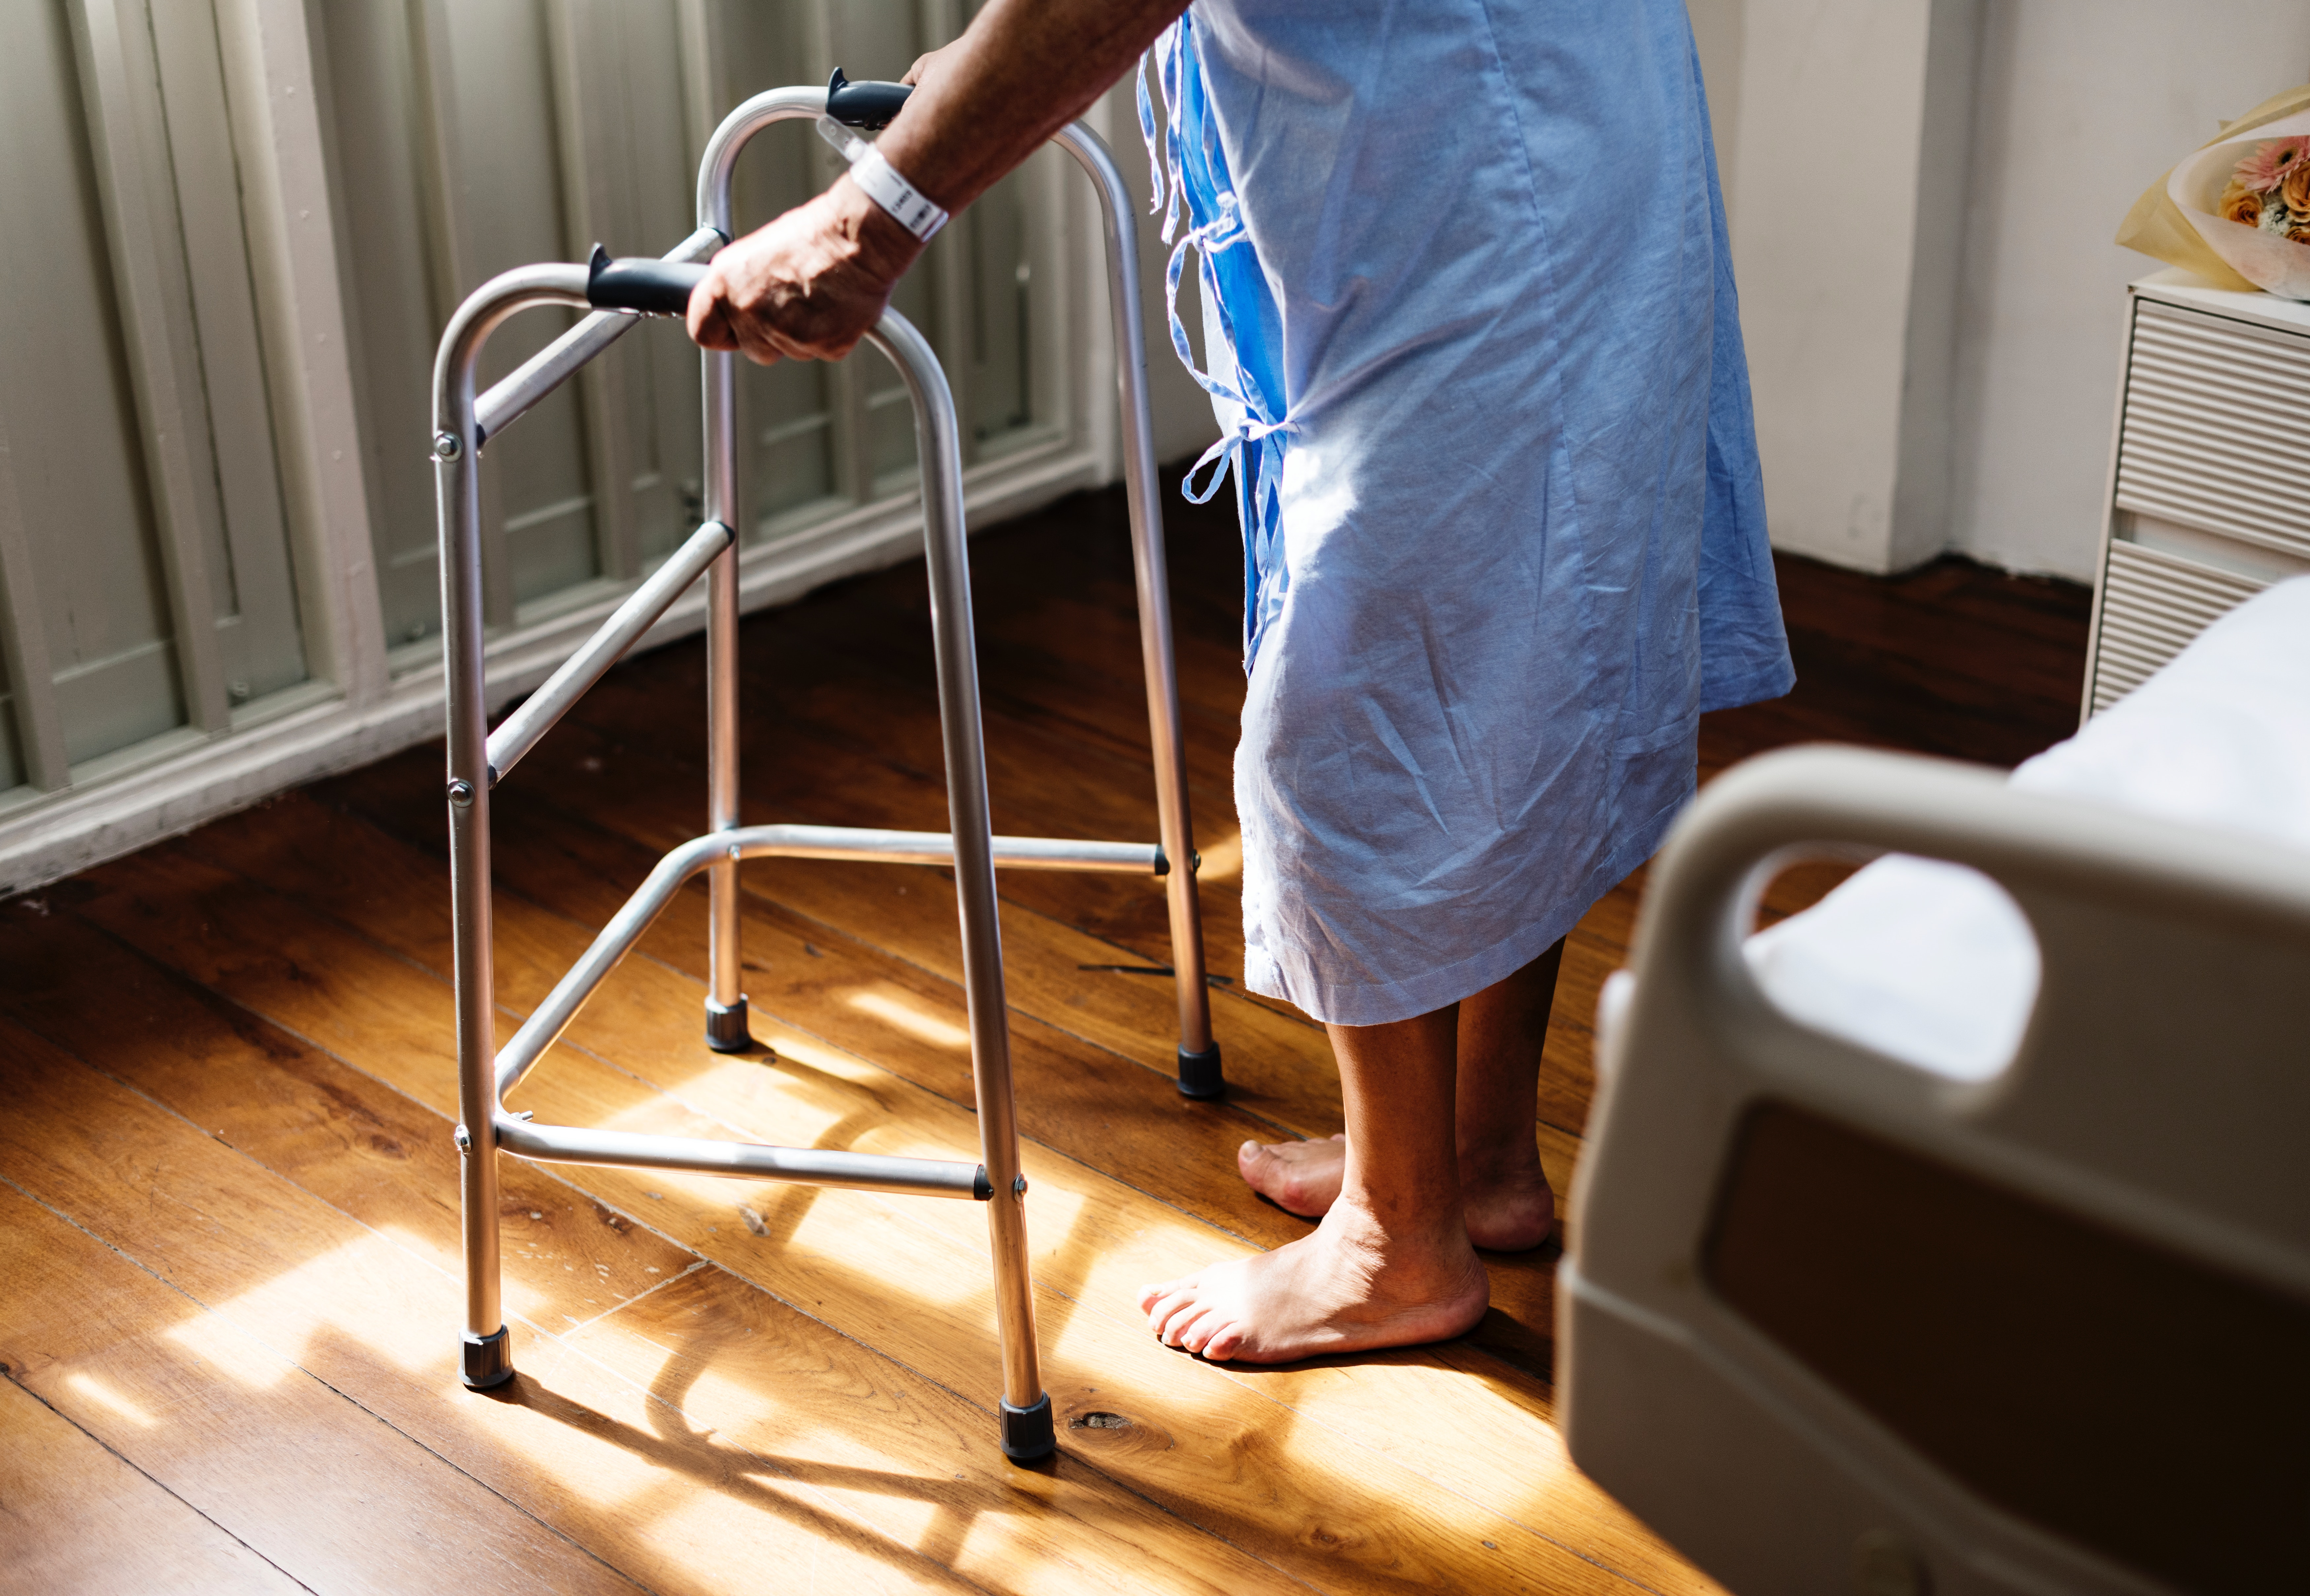 Aged-care: protecting those who protected us